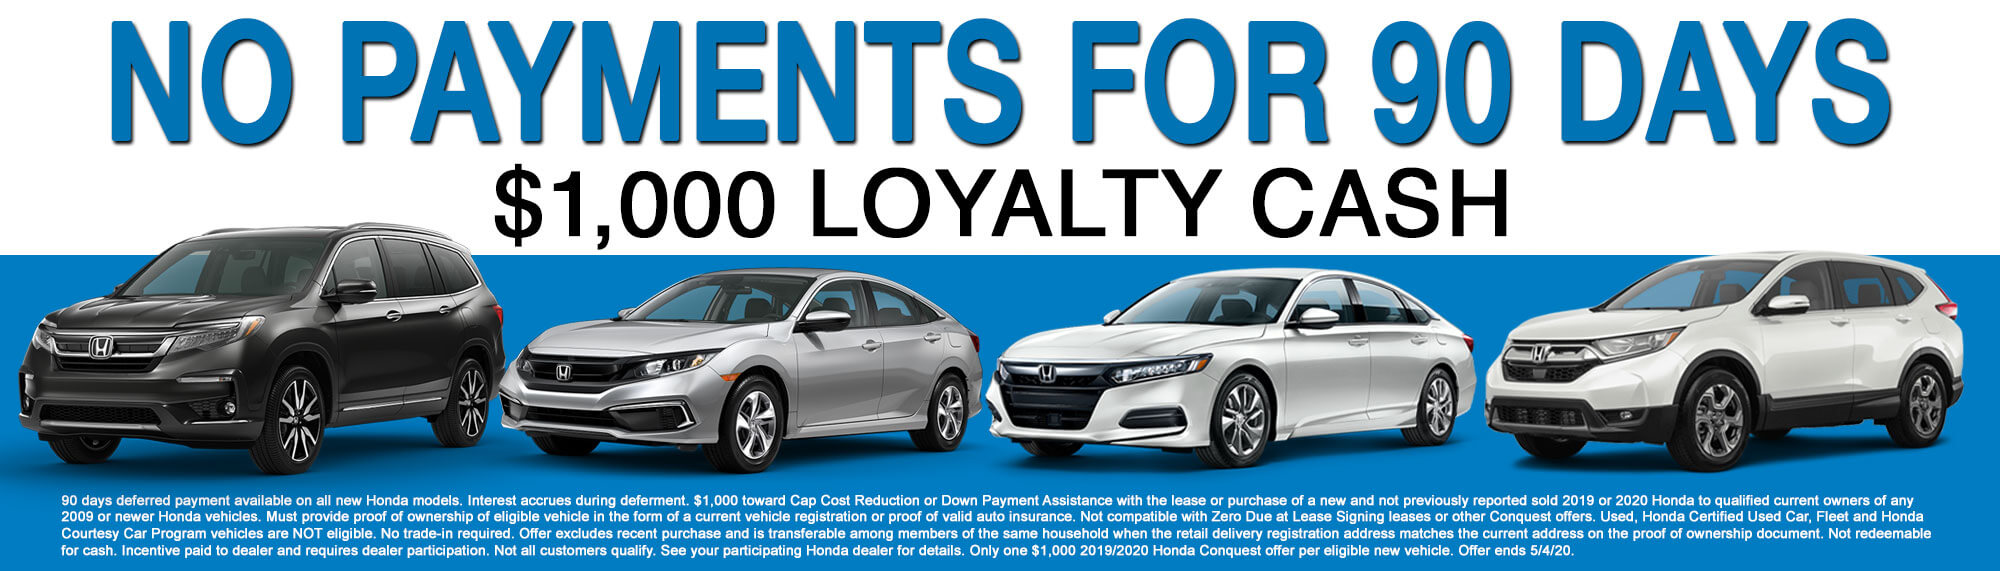 No Payments for 90 Days offer